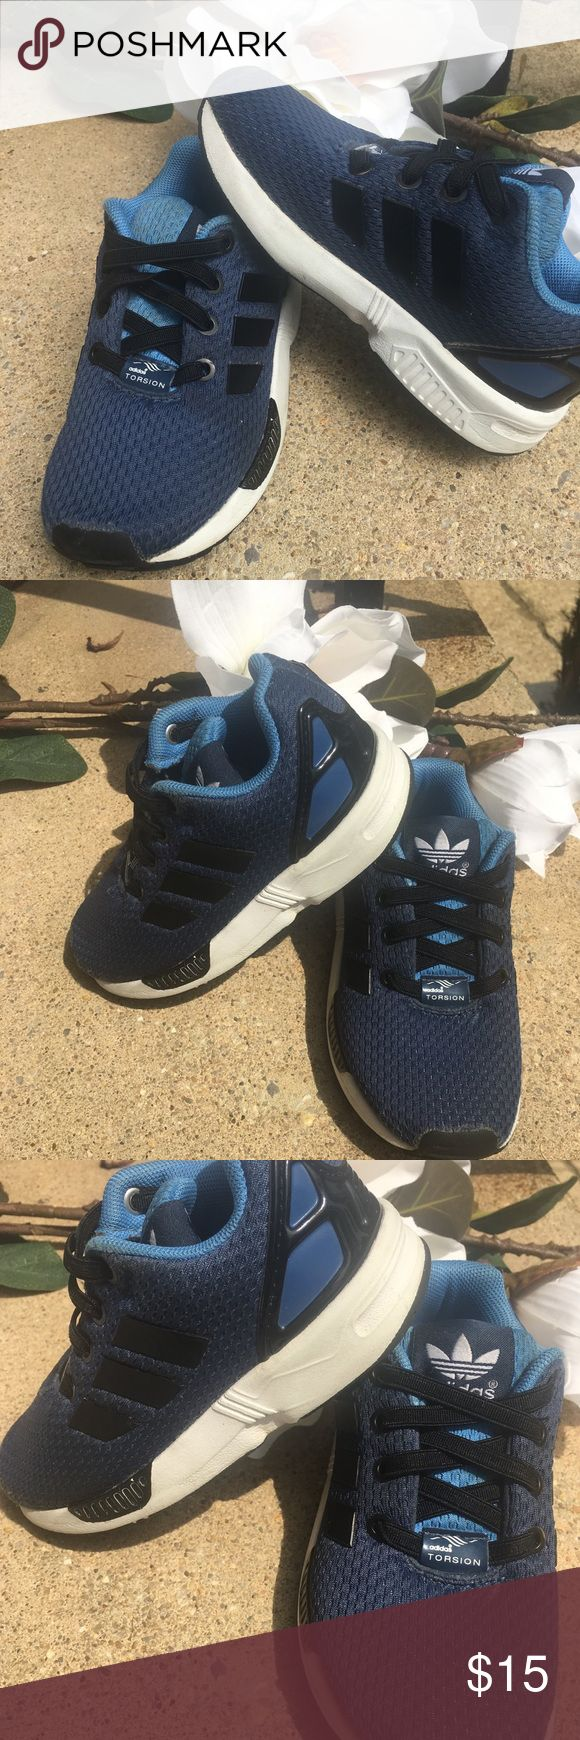 ⚜️Adidas Torsion ZX Flux Sneakers Size 8⚜️ Adidas Torsion ZX Flux No Tie Sneakers in 8c⚜️Multi dimensional colored fabric with no tie laces⚜️Good Condition⚜️Discoloration/Stain on tongue (see pics) adidas Shoes Sneakers